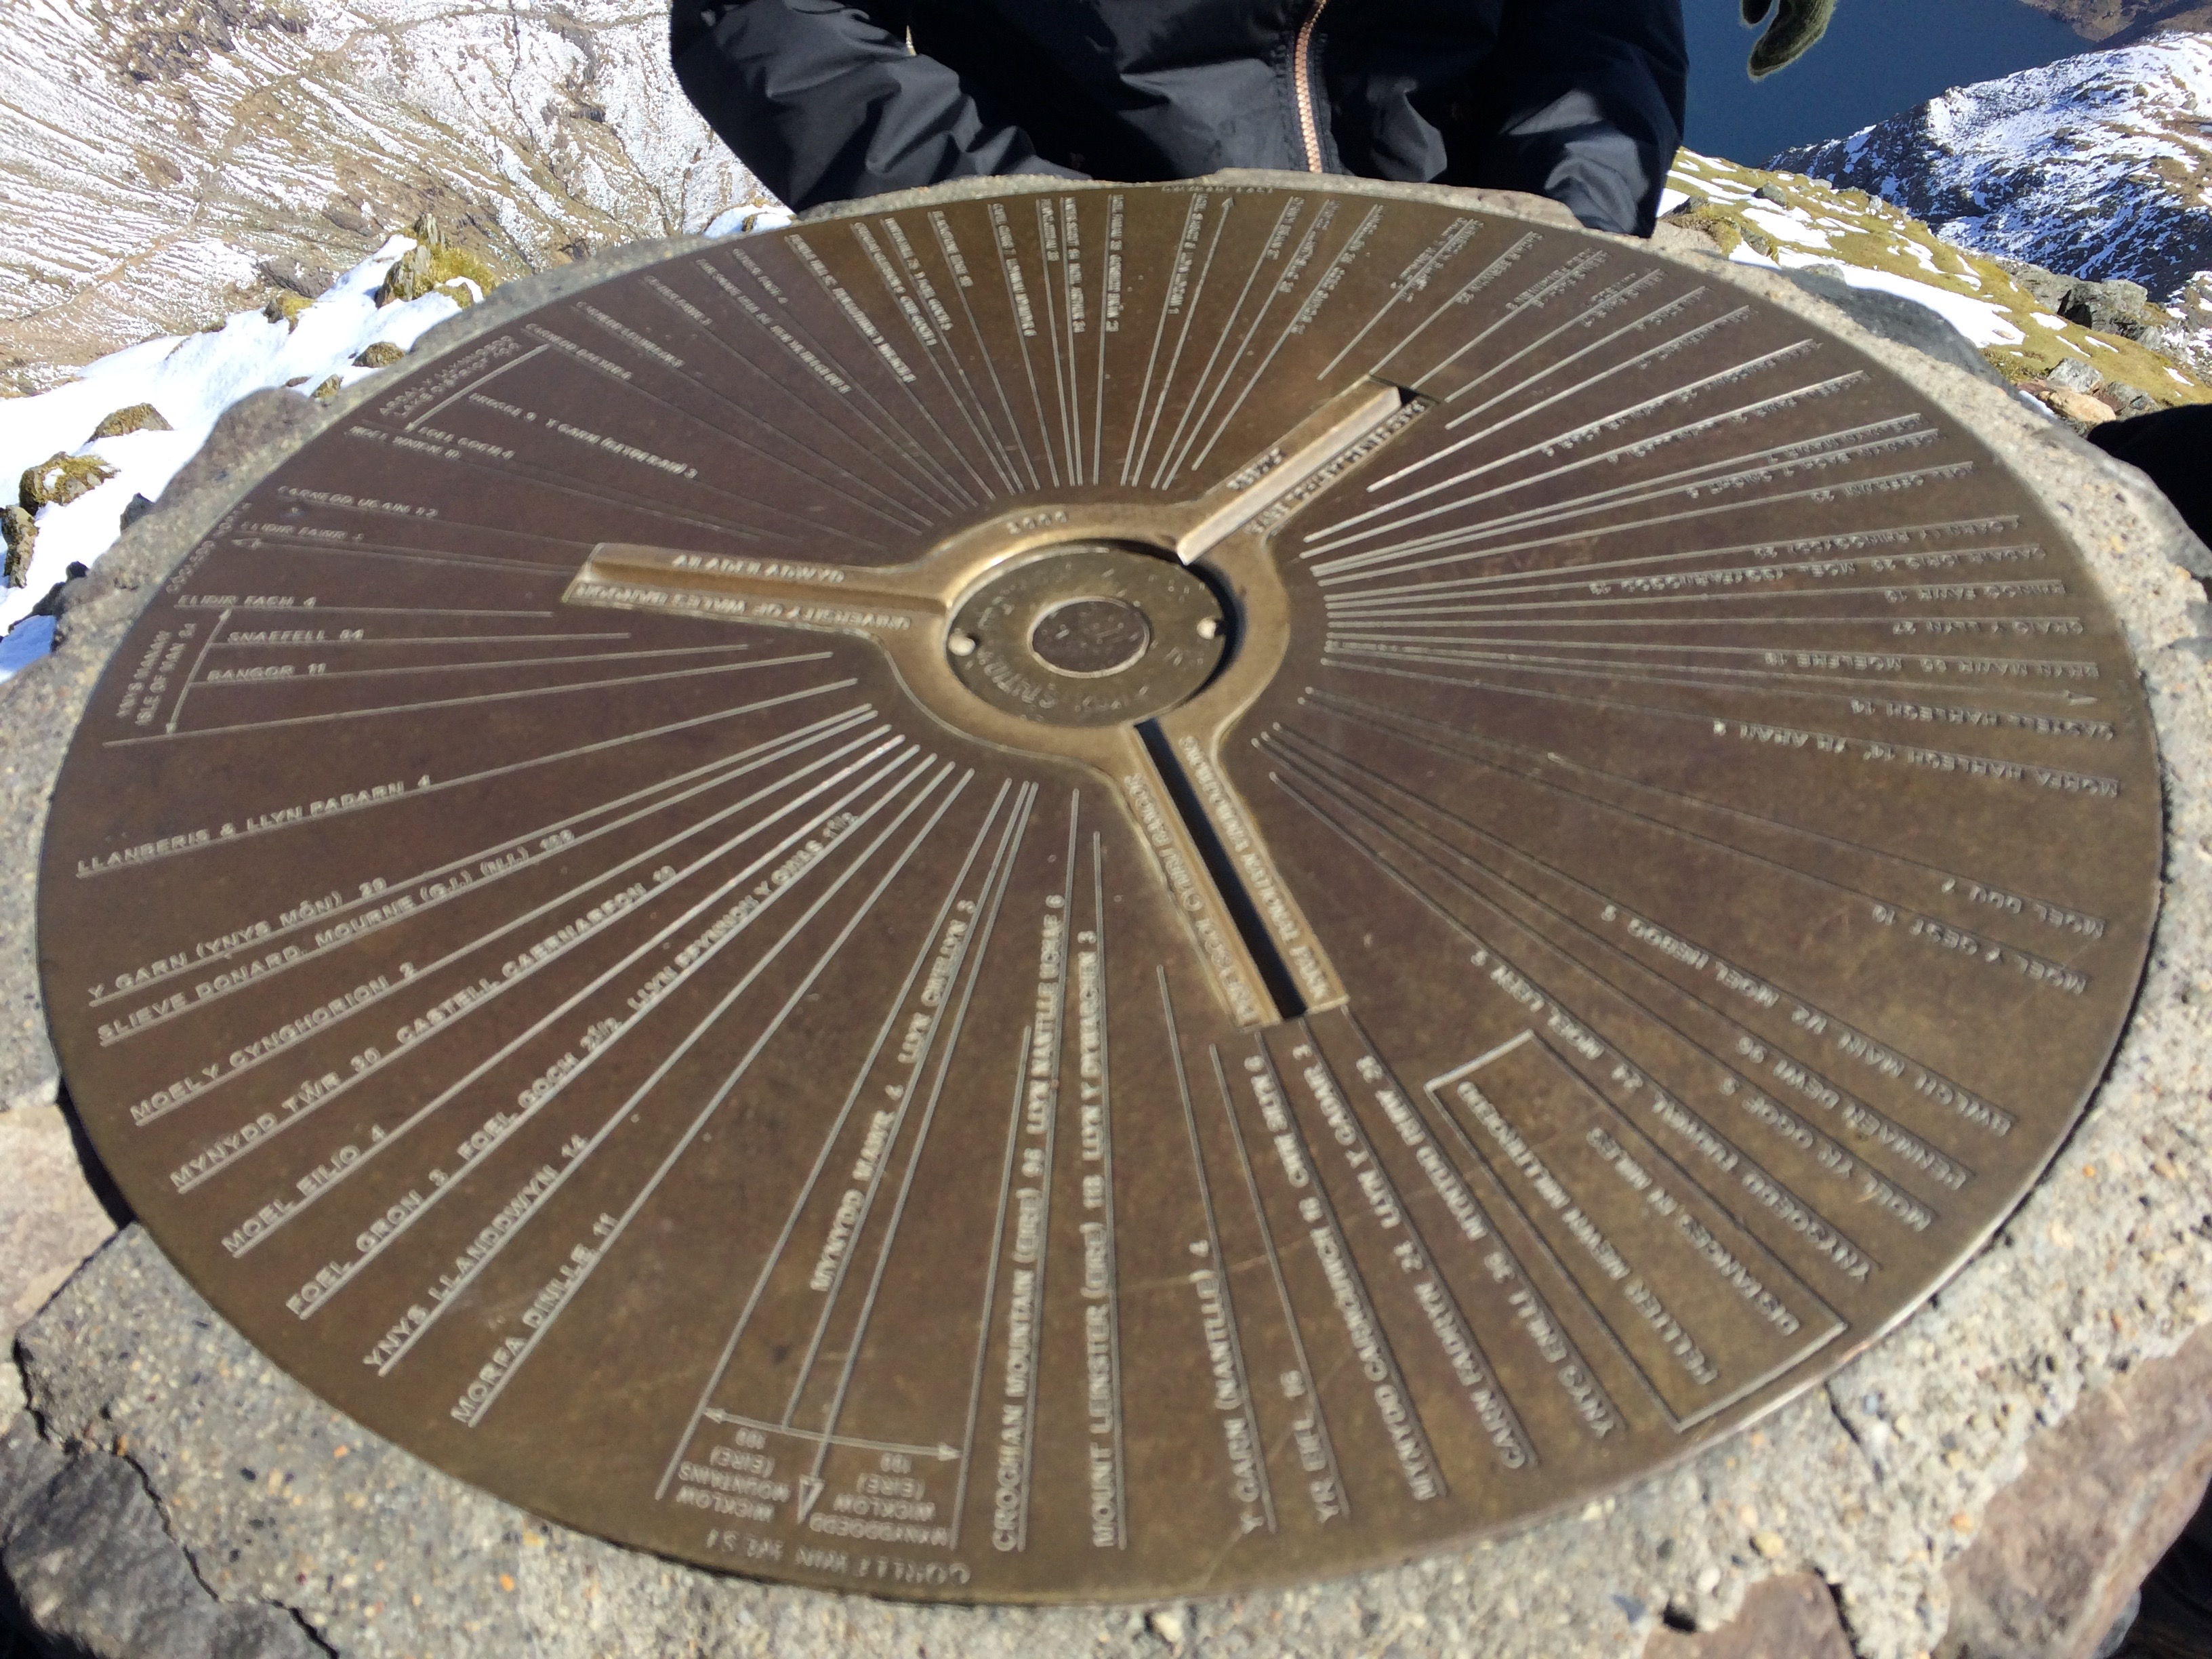 Snowdon summit trig